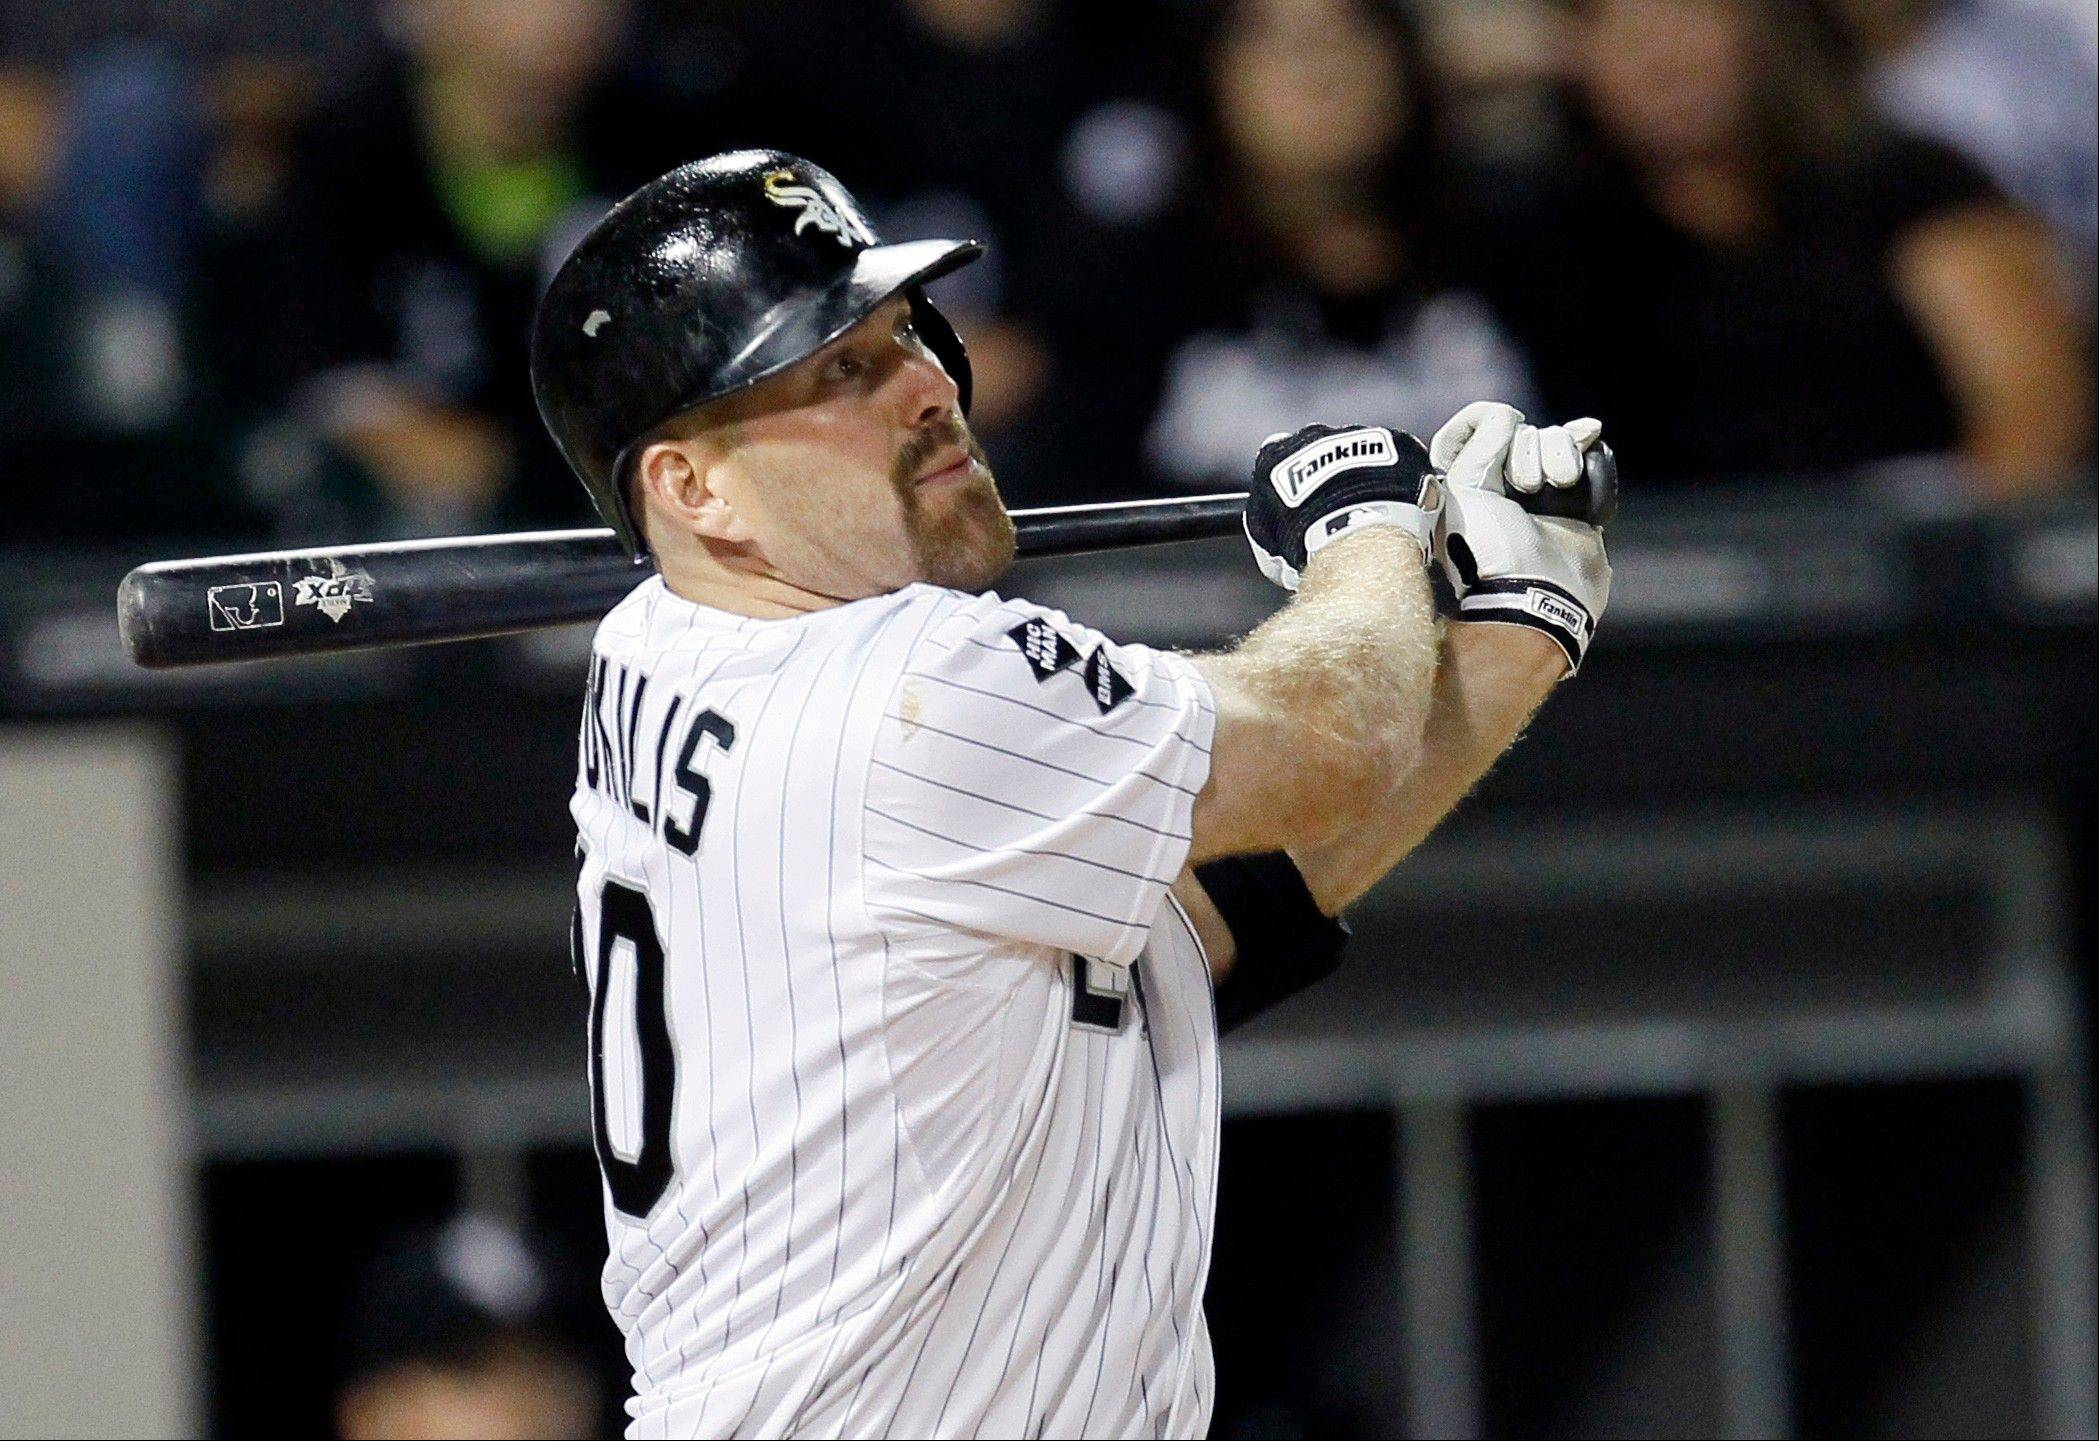 Chicago White Sox's Kevin Youkilis hits a grand slam off a pitch by New York Yankees' Ivan Nova during the fifth inning of a baseball game, Tuesday, Aug. 21, 2012, in Chicago. Also scoring on the play was Alexei Ramirez, Gordon Beckham, and Dewayne Wise. (AP Photo/Charles Rex Arbogast)